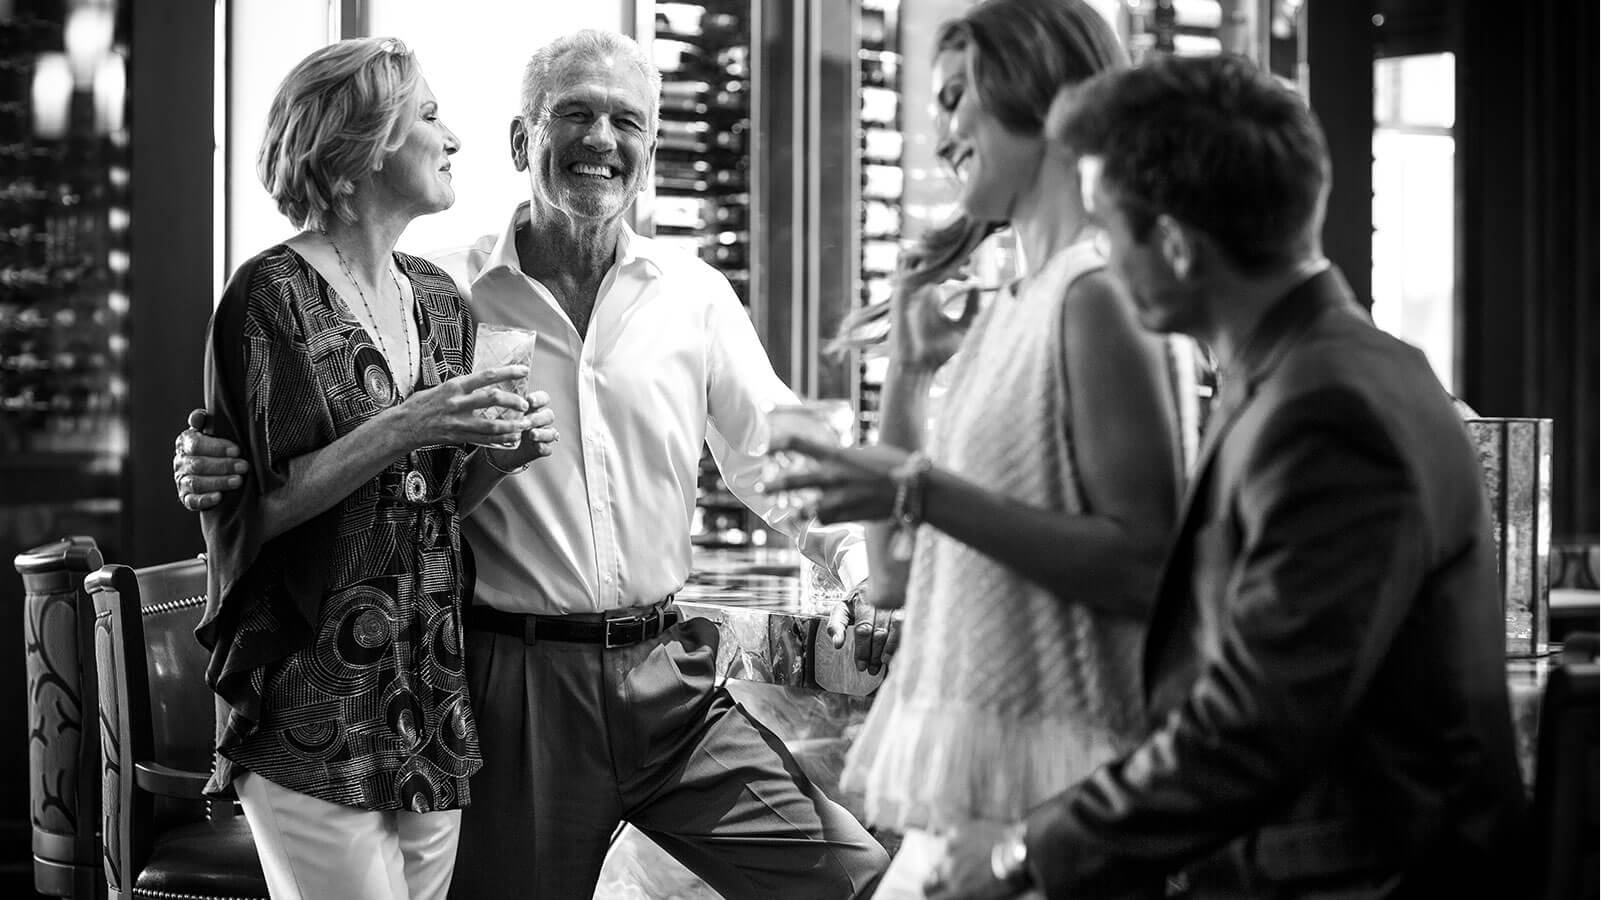 Two couples laughing